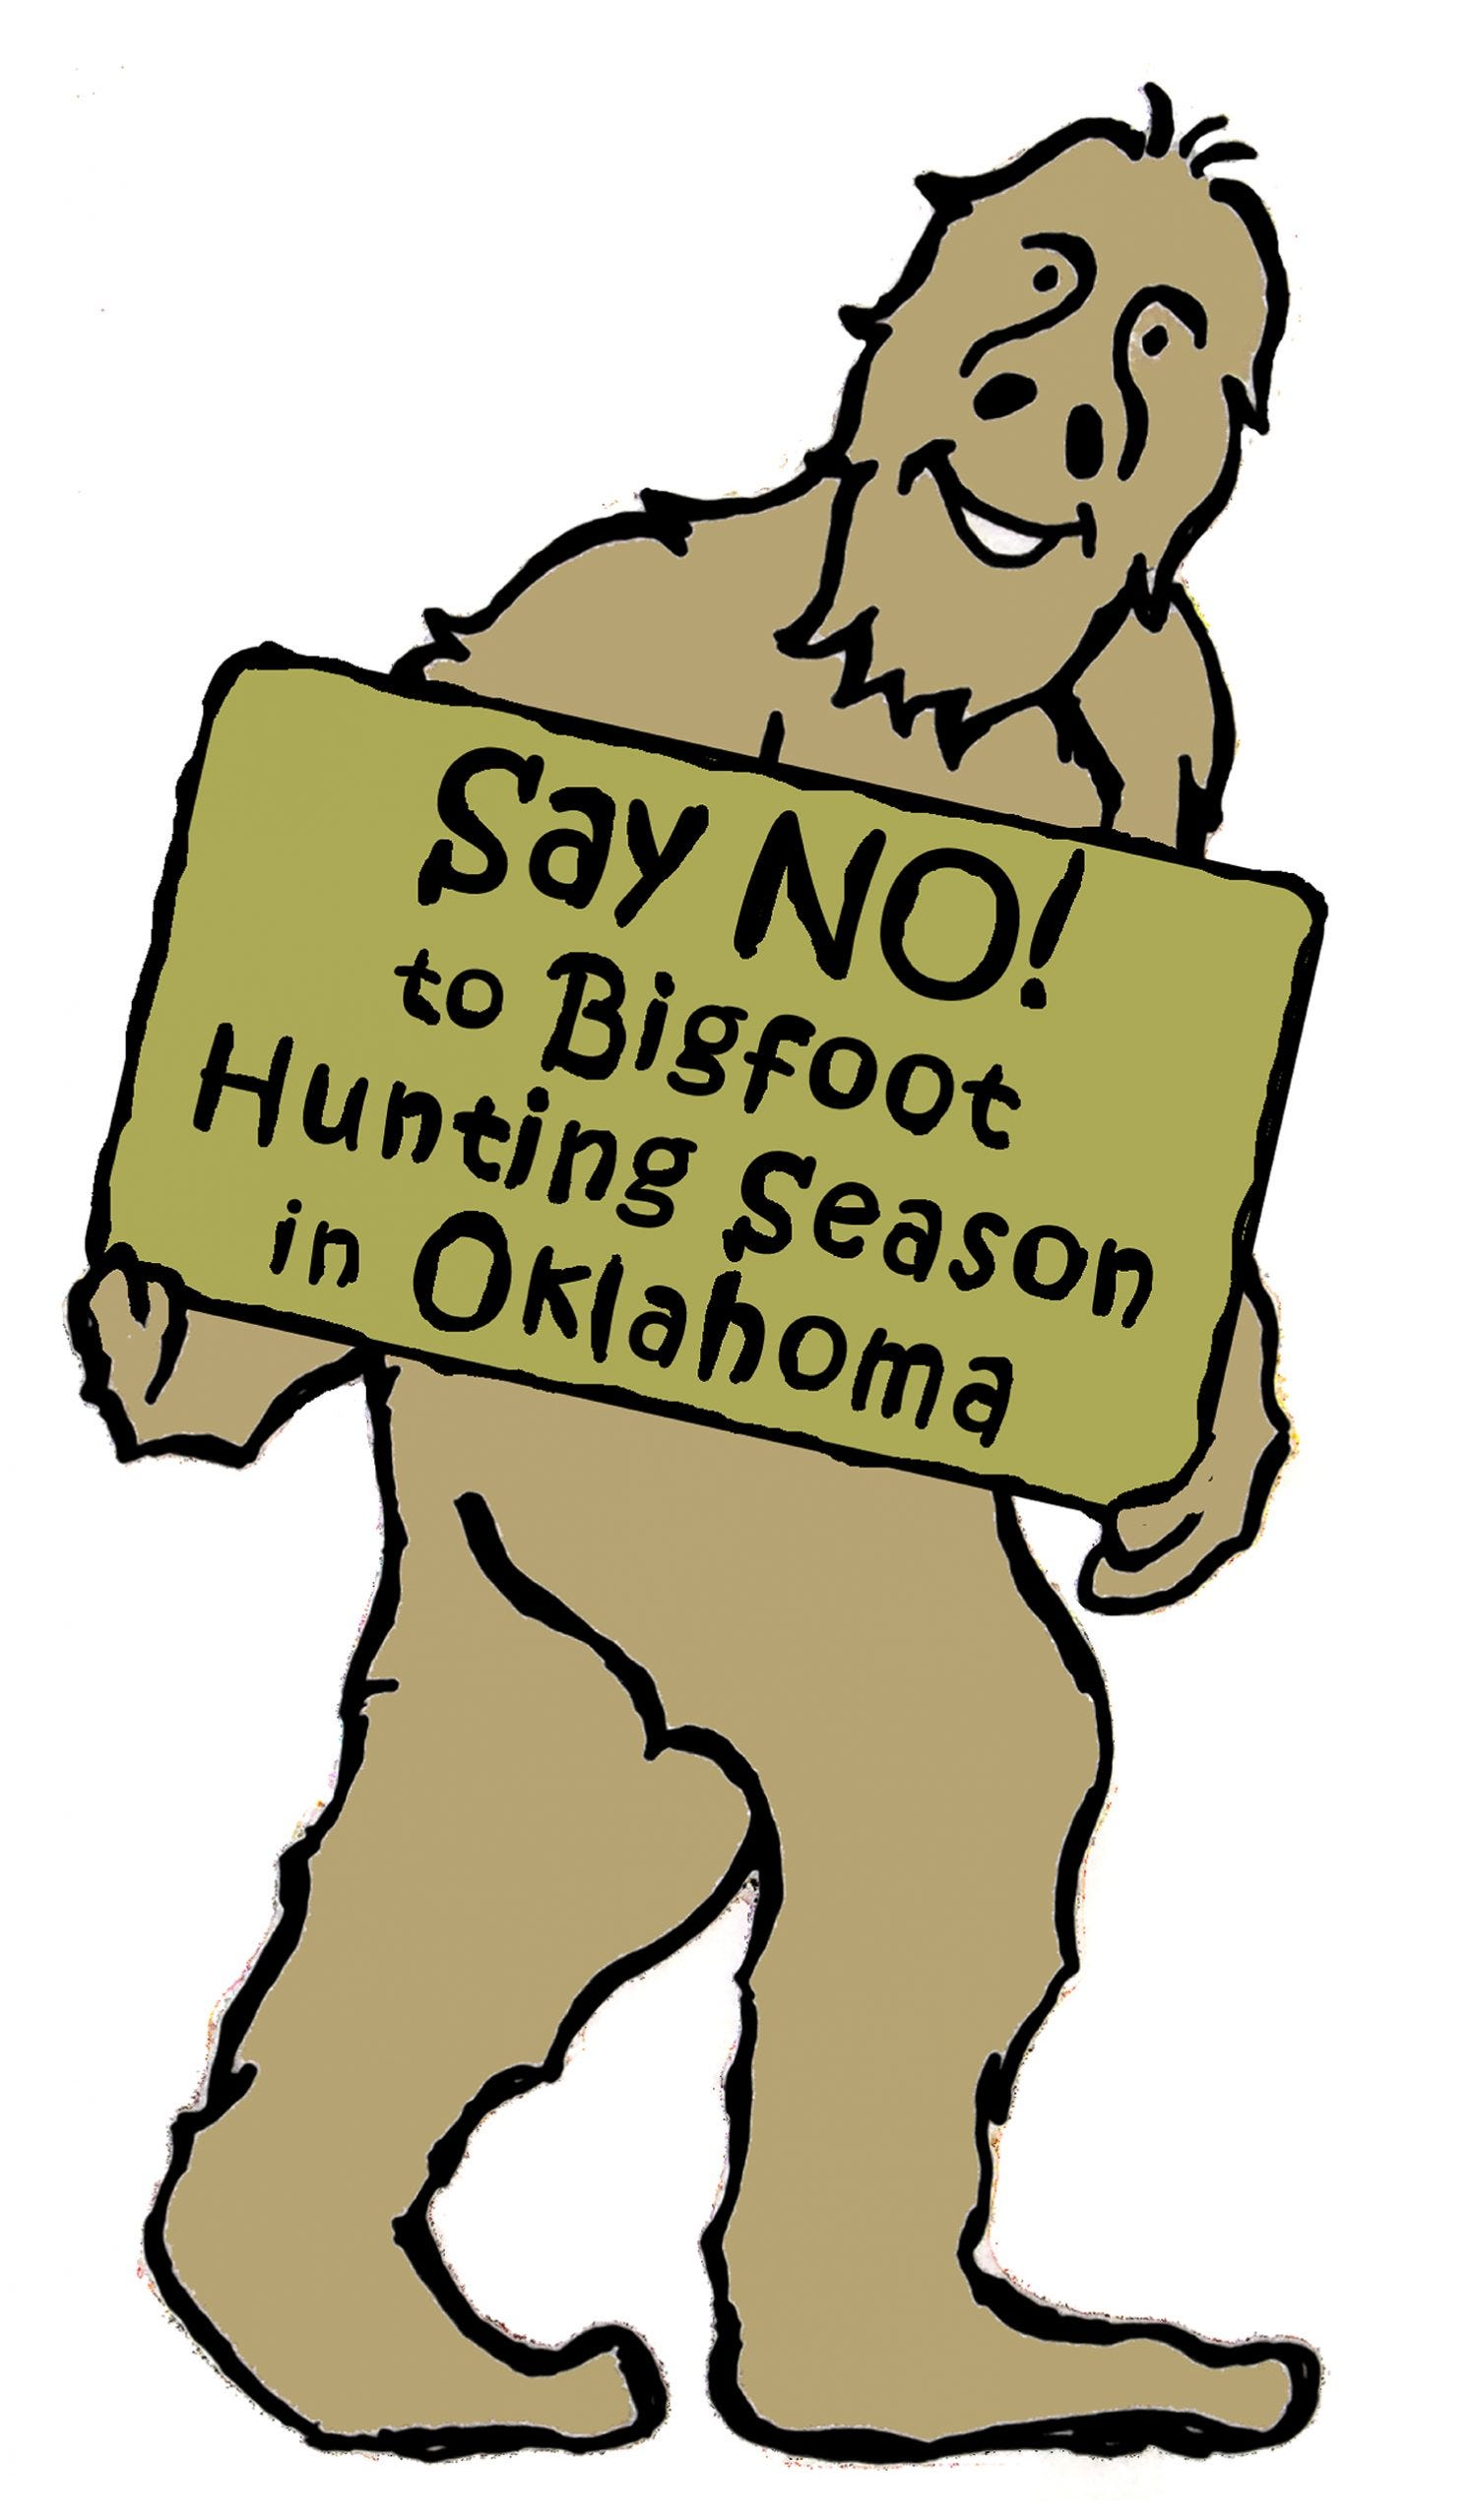 BigFoot Visits the Big Cities of the World - Another BigFoot Sighting